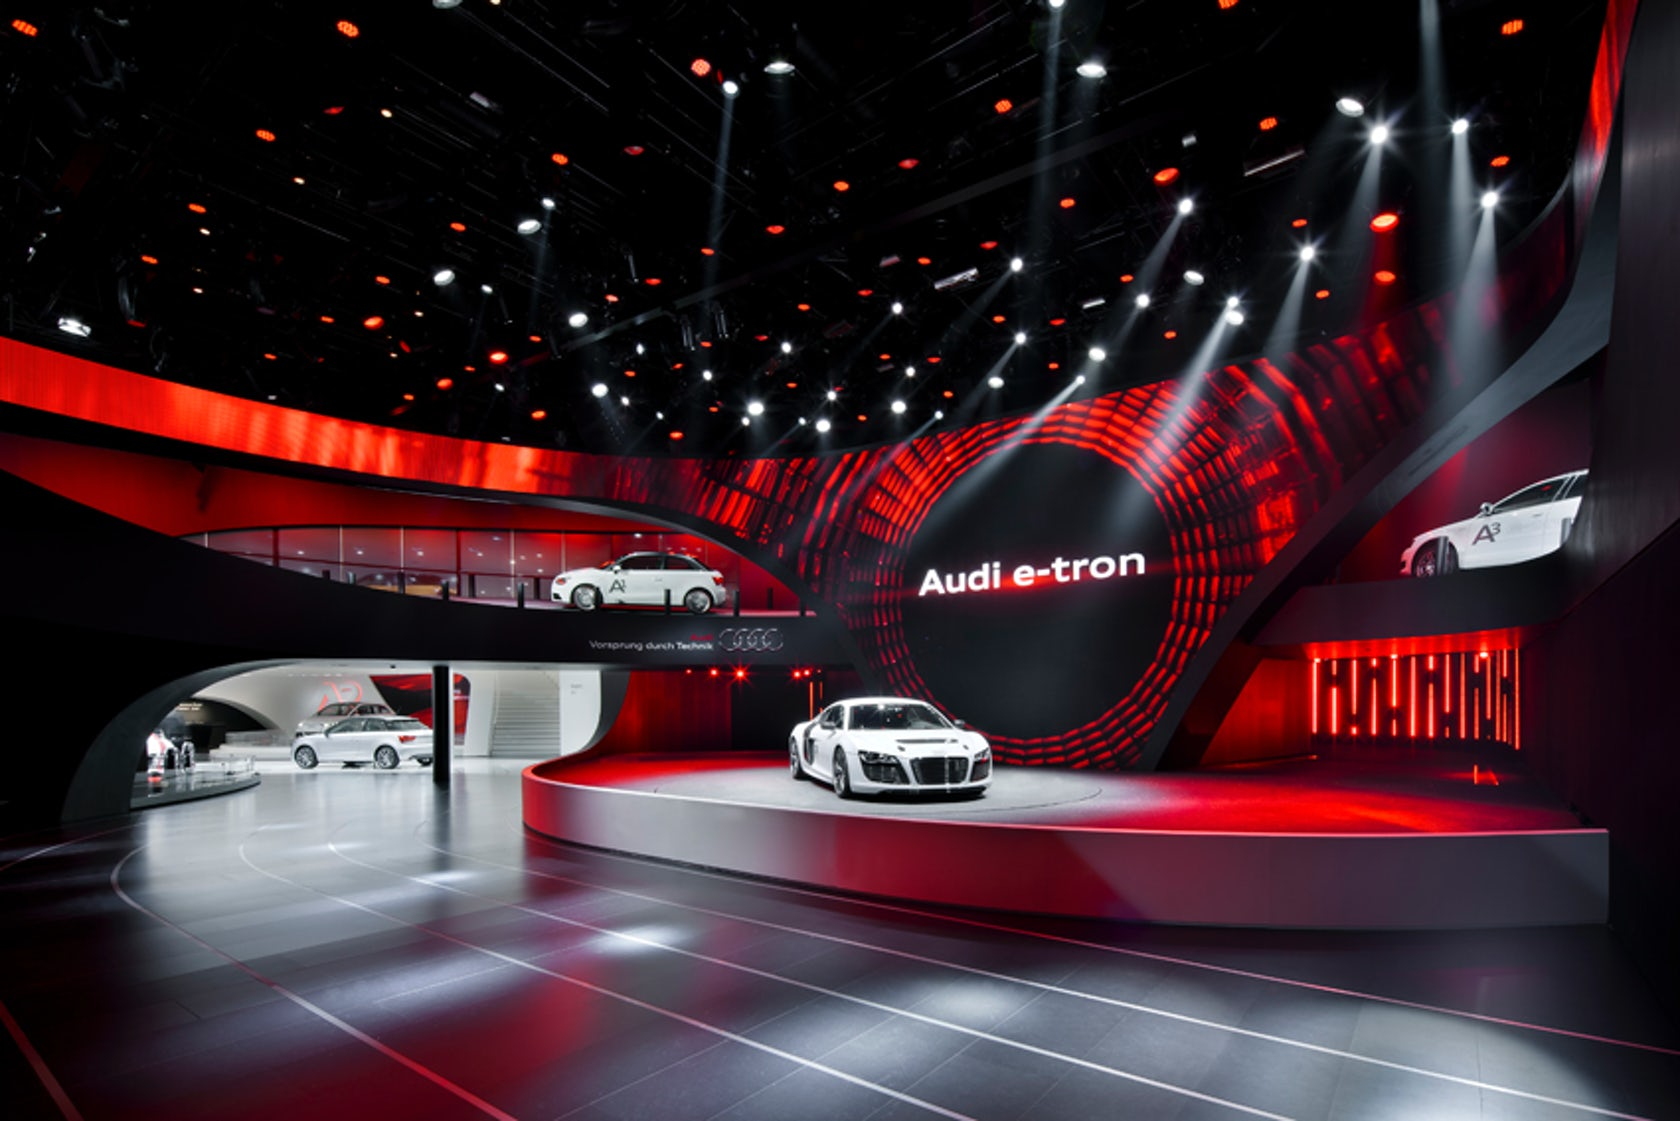 D Printing Exhibition Frankfurt : The audi ring at frankfurt motor show as a separate building architizer